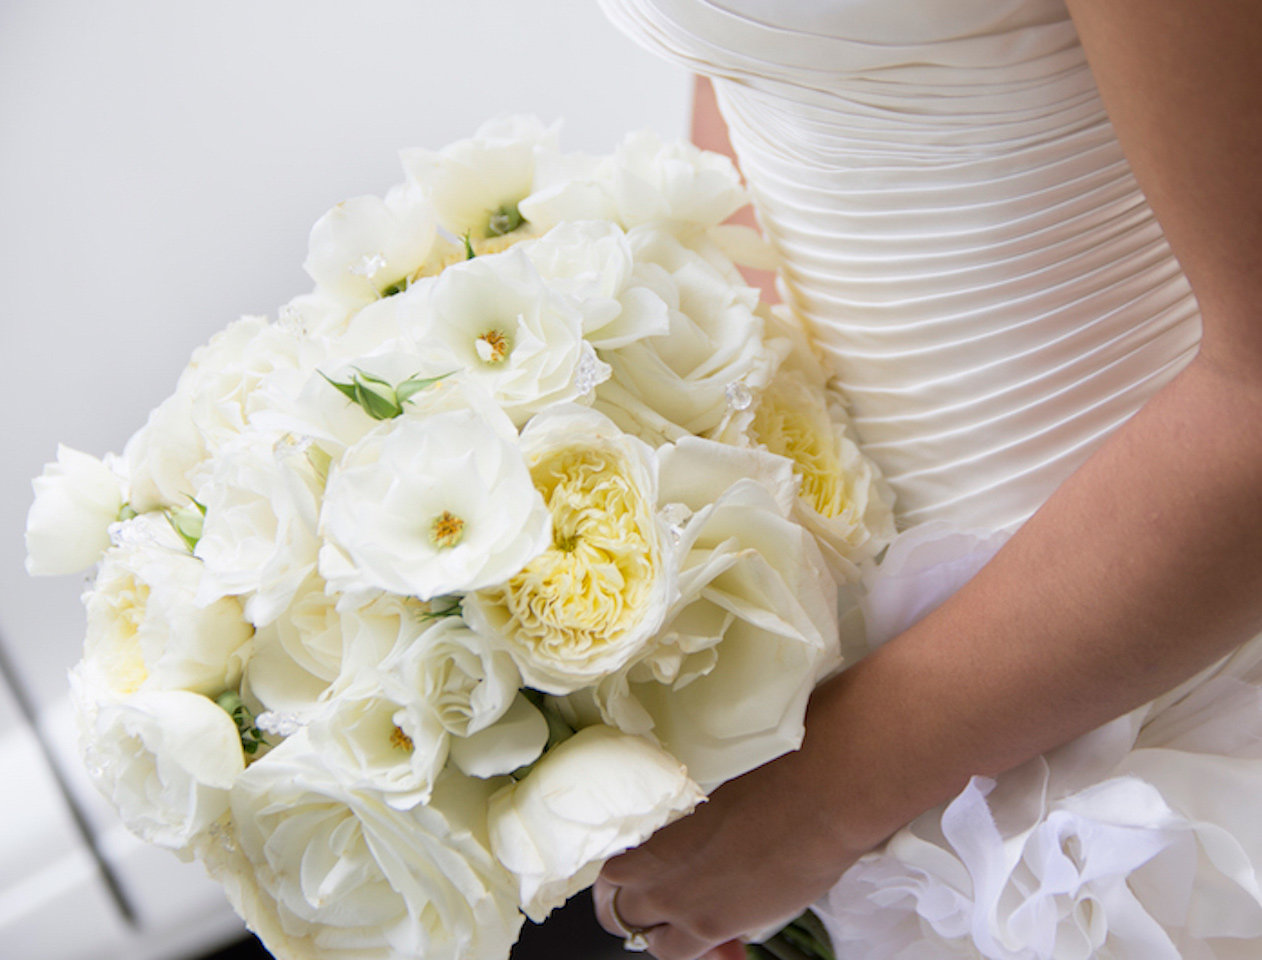 Top 9 Wedding Bouquets According to Carats Cake Meet the Top 9